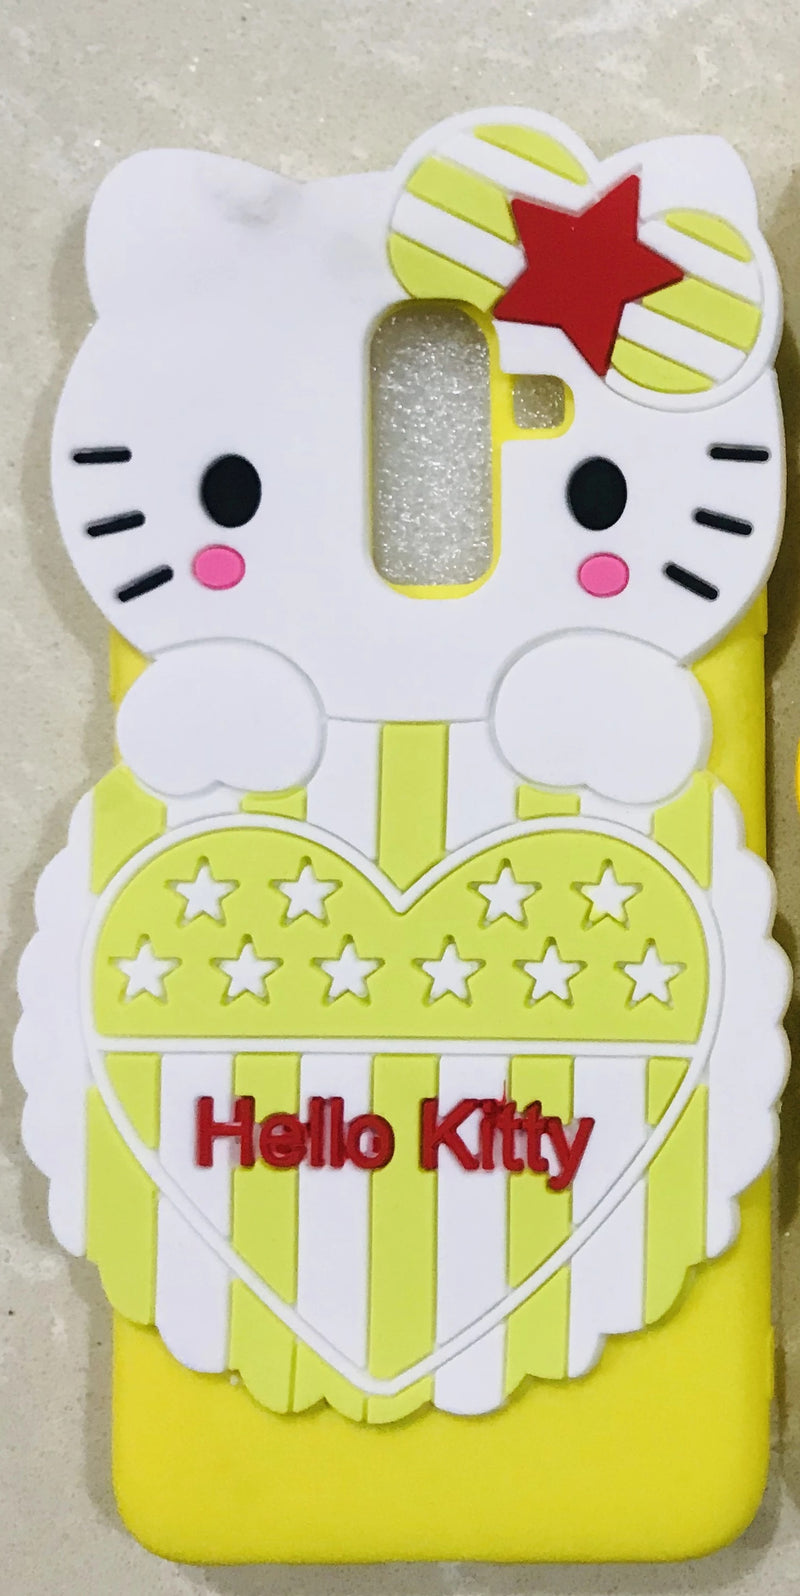 Girl's Back Cover Hello Kitty Silicon for Samsung J8 - AHFK00830005FKSSJ8C Pink | Yellow | Black